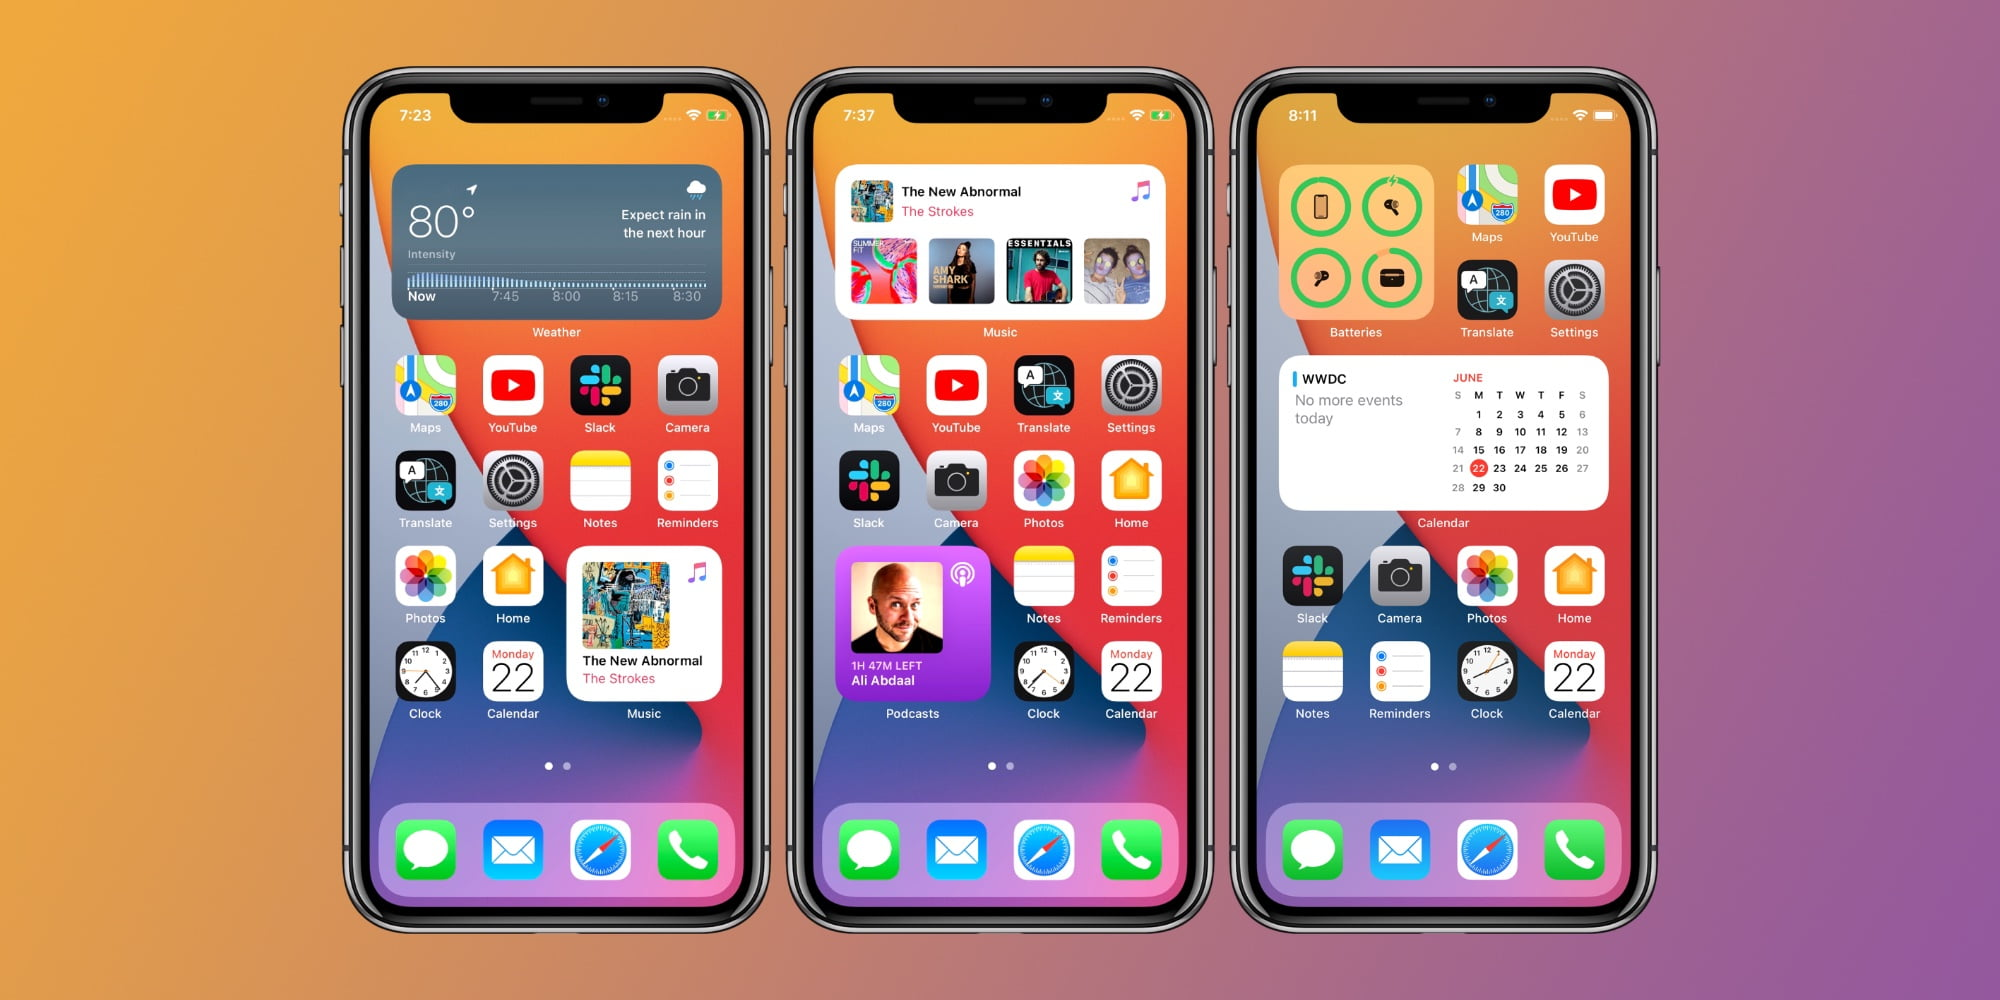 How to use the new iPhone home screen widgets on iOS 14?